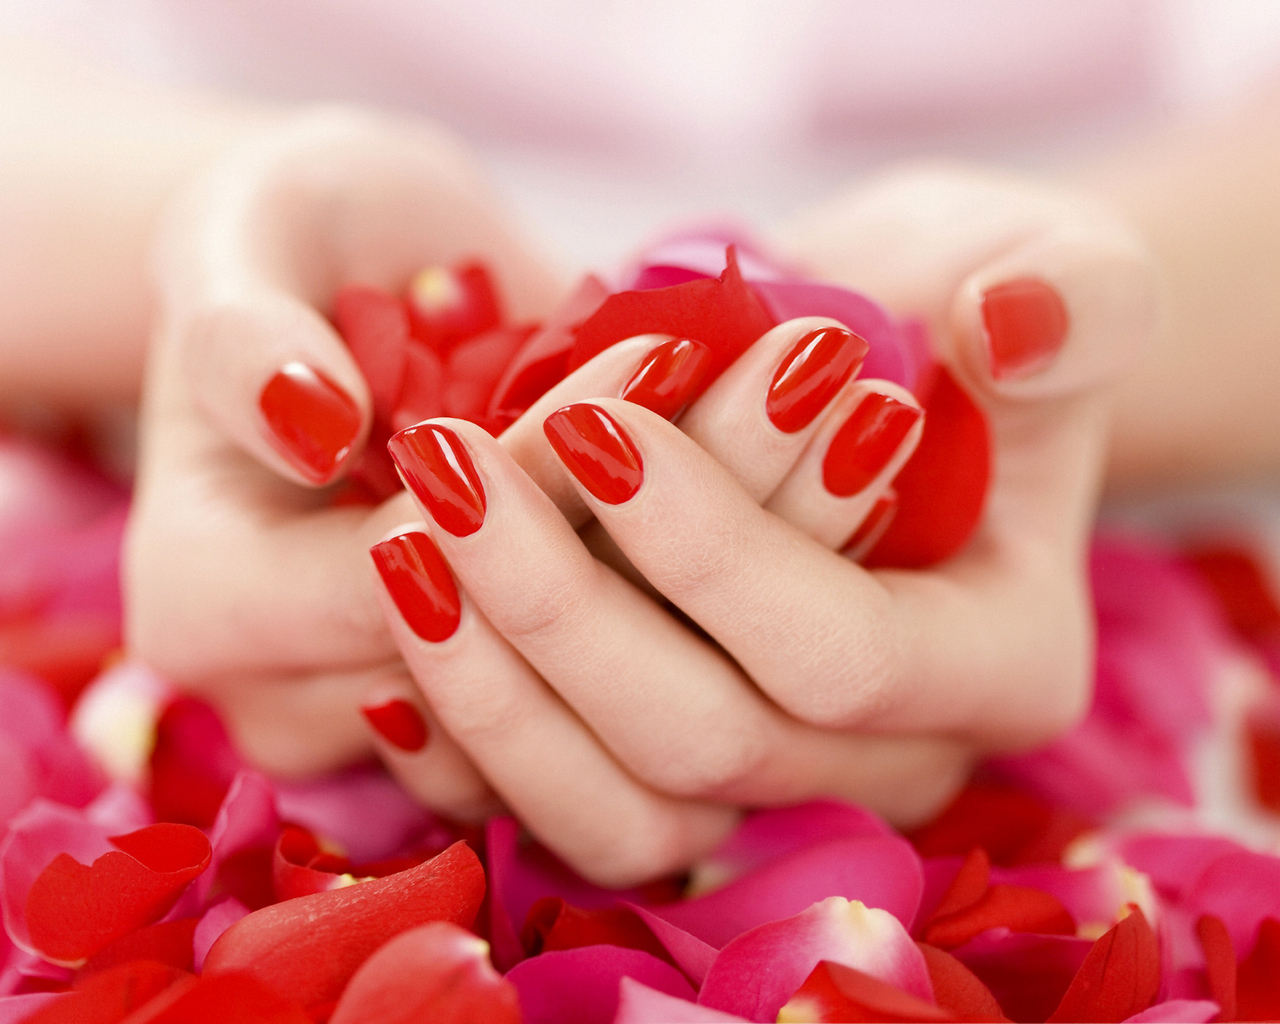 Red Rose Petals Wallpaper